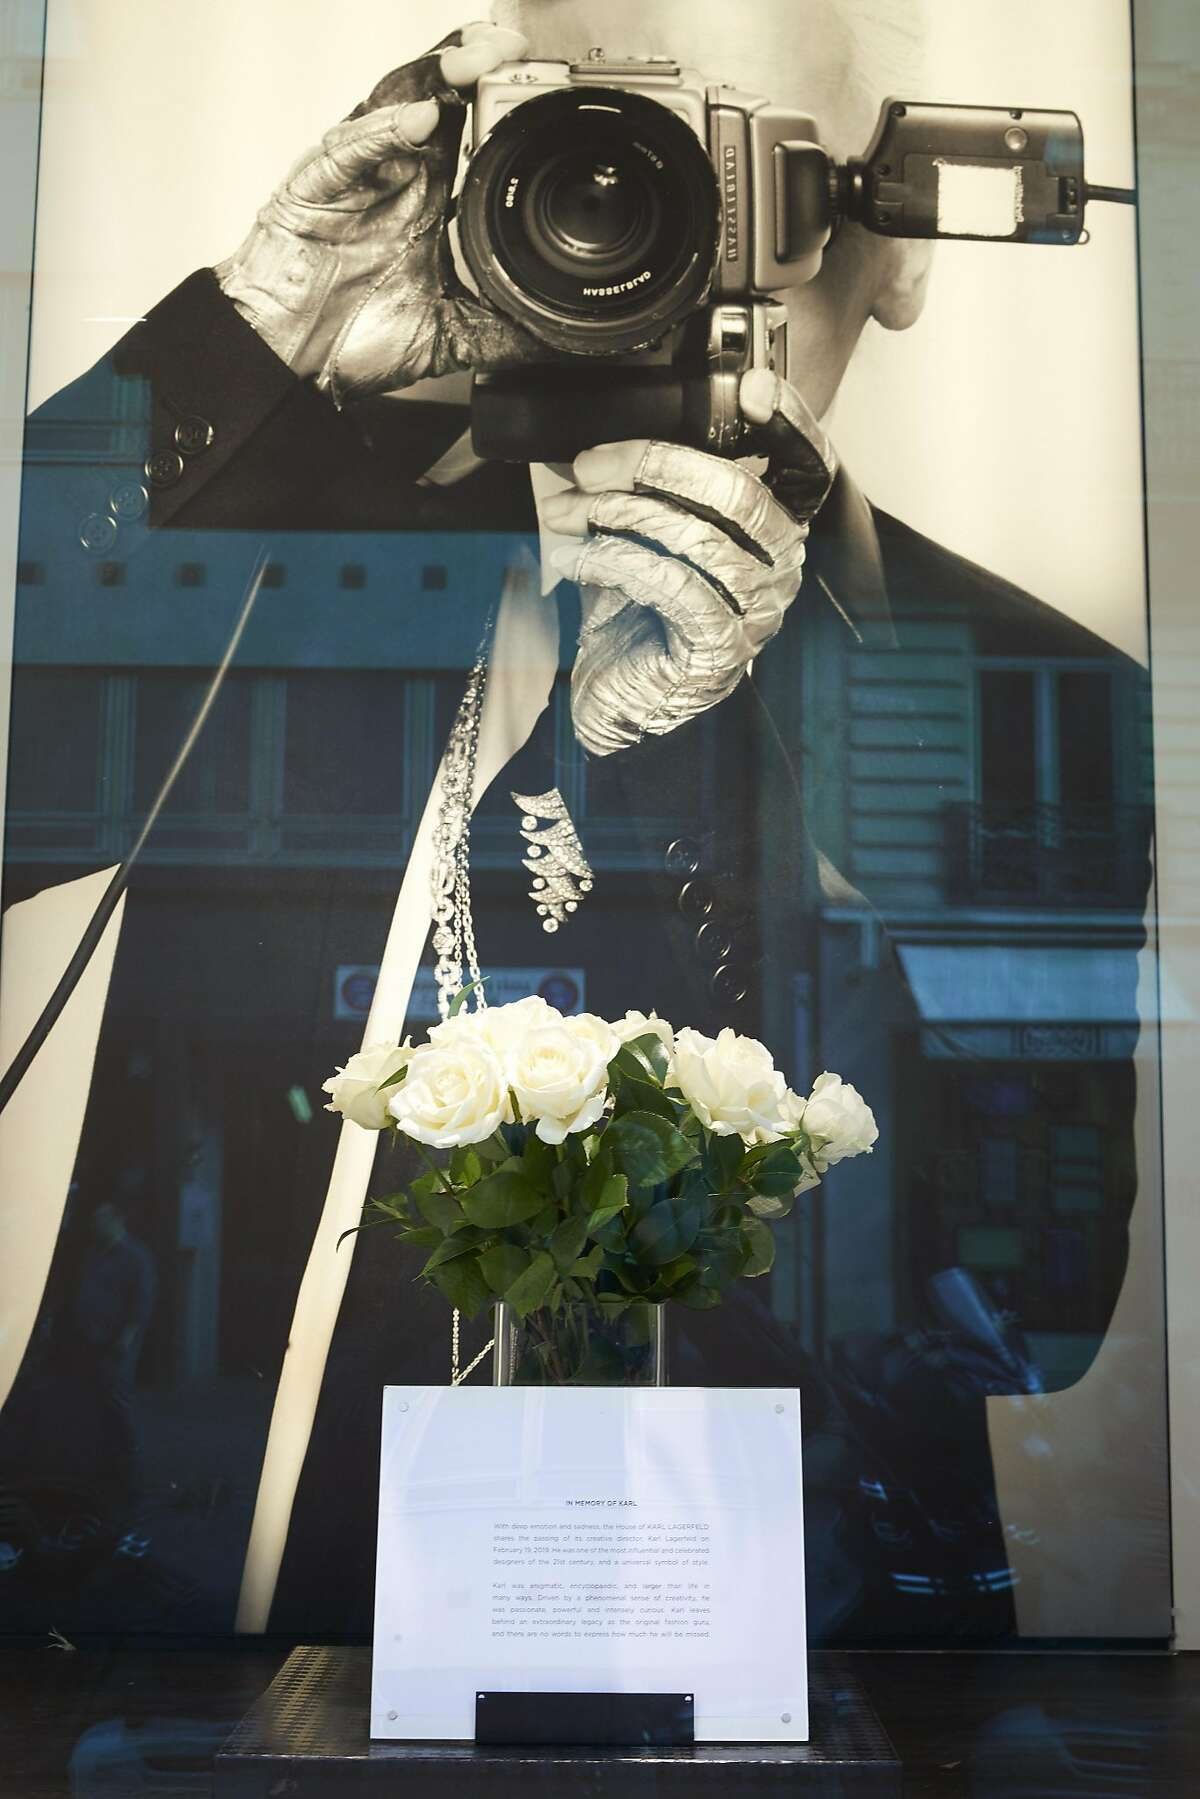 PARIS, FRANCE - FEBRUARY 20: A tribute to the designer Karl Lagerfeld in the window of his boutique near the Champs Elysees on February 20, 2019 in Paris, France. Celebrated fashion designer Karl Lagerfeld died in Paris yesterday, aged 85. Most recently he was Creative Director at both the fashion houses of Chanel and Fendi and during his career he also worked with Pierre Balmain and Chloe. Several designers have paid tribute to him including Donatella Versace and Victoria Beckham. Virginie Viard, who was with Lagerfeld since she was an intern, has been appointed by Chanel as his successor. (Photo by Kiran Ridley/Getty Images)